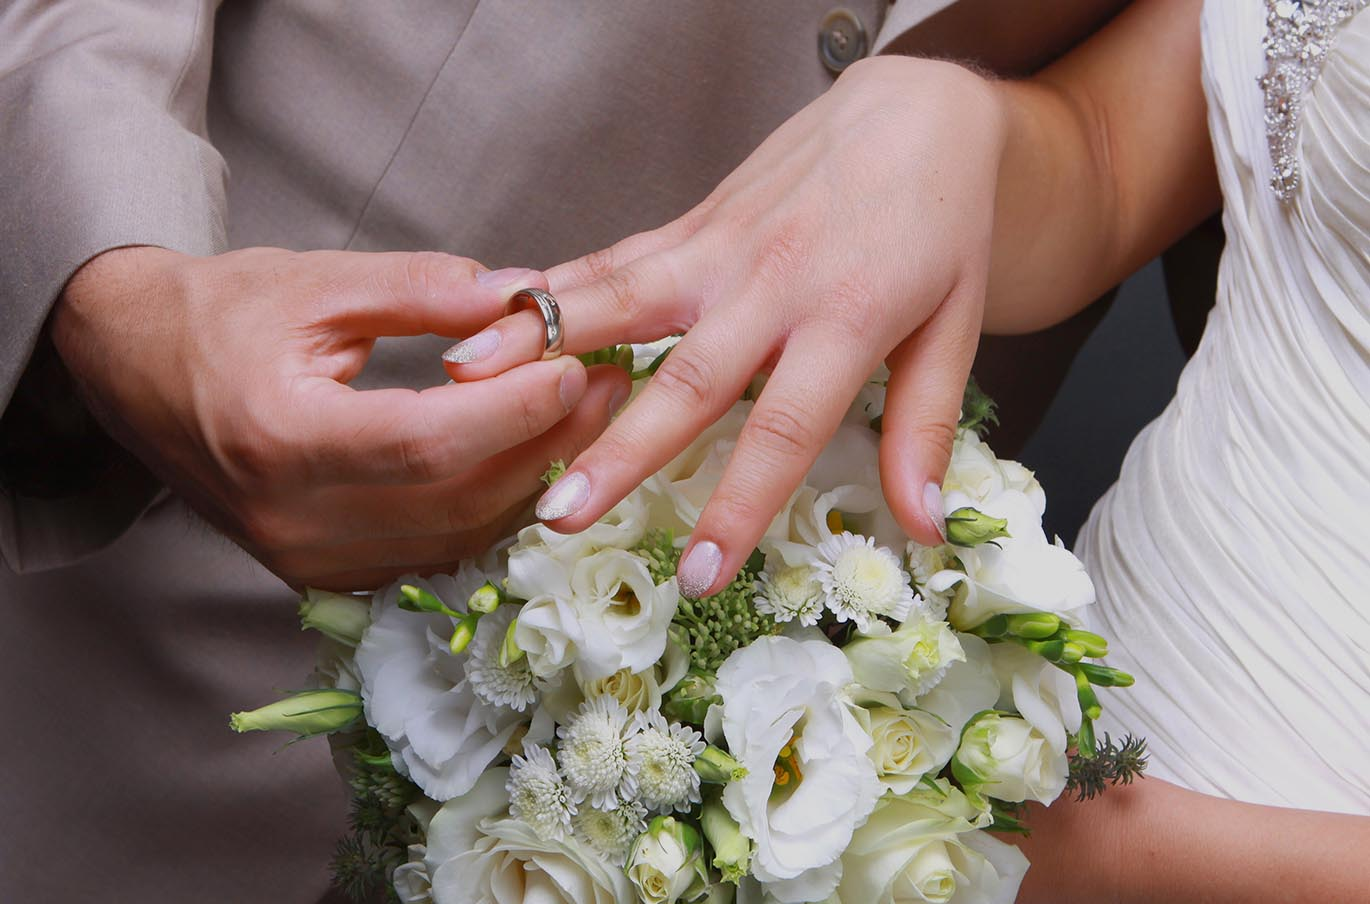 Close up of groom placing a ring on a bride's finger.